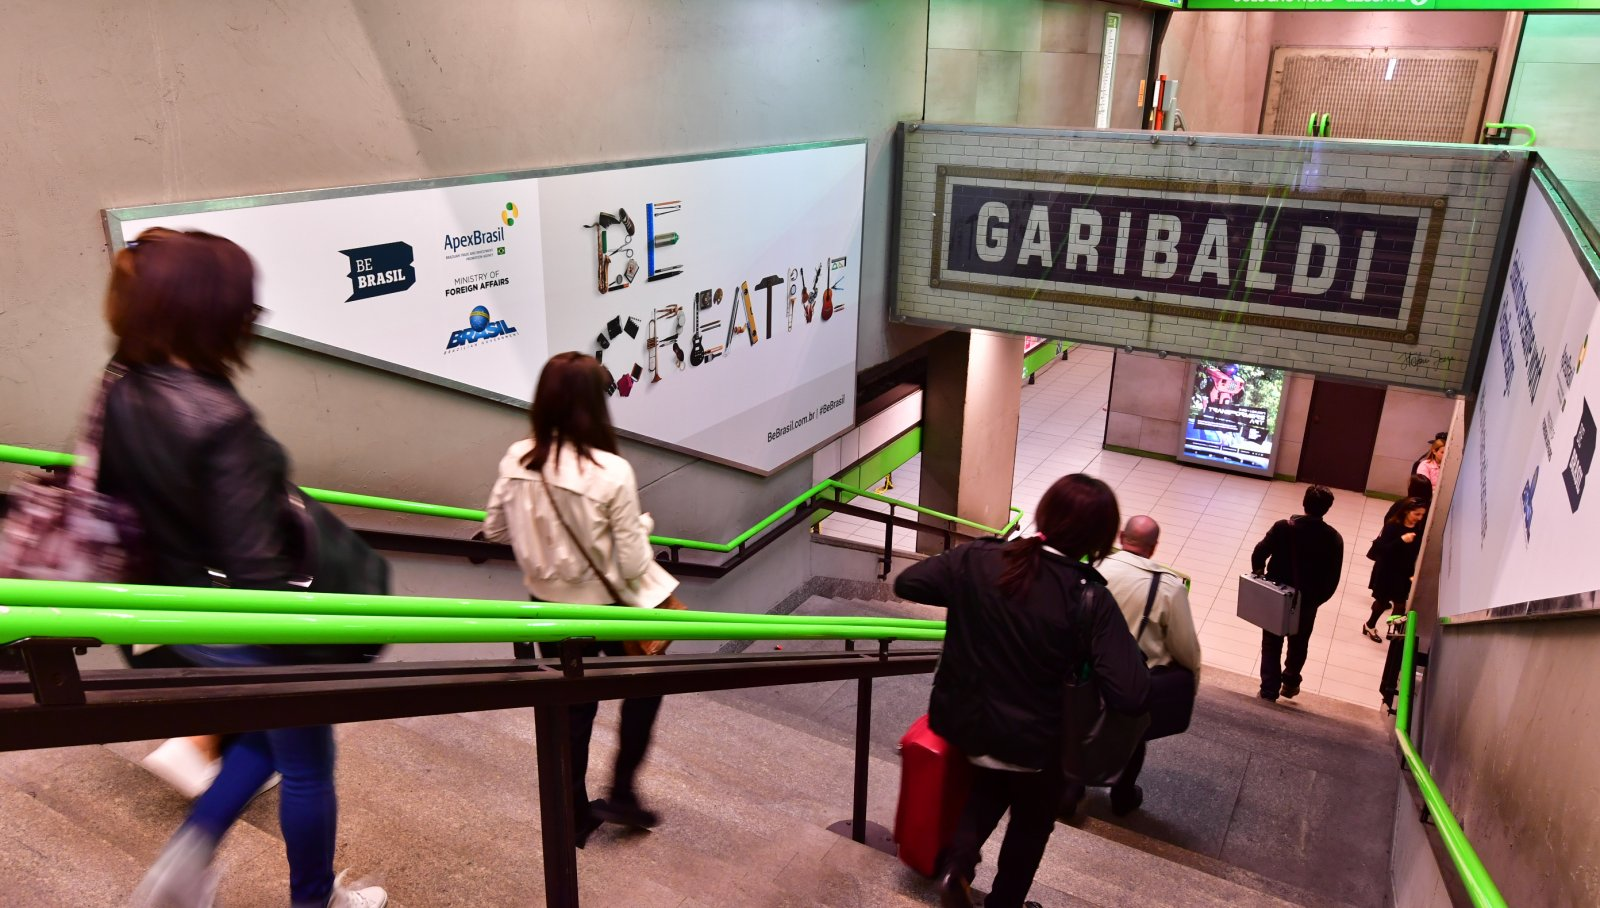 Pubblicità in metropolitana Milano Station Domination Garibaldi-Step Domination-Apex-Design Week-IGPDecaux